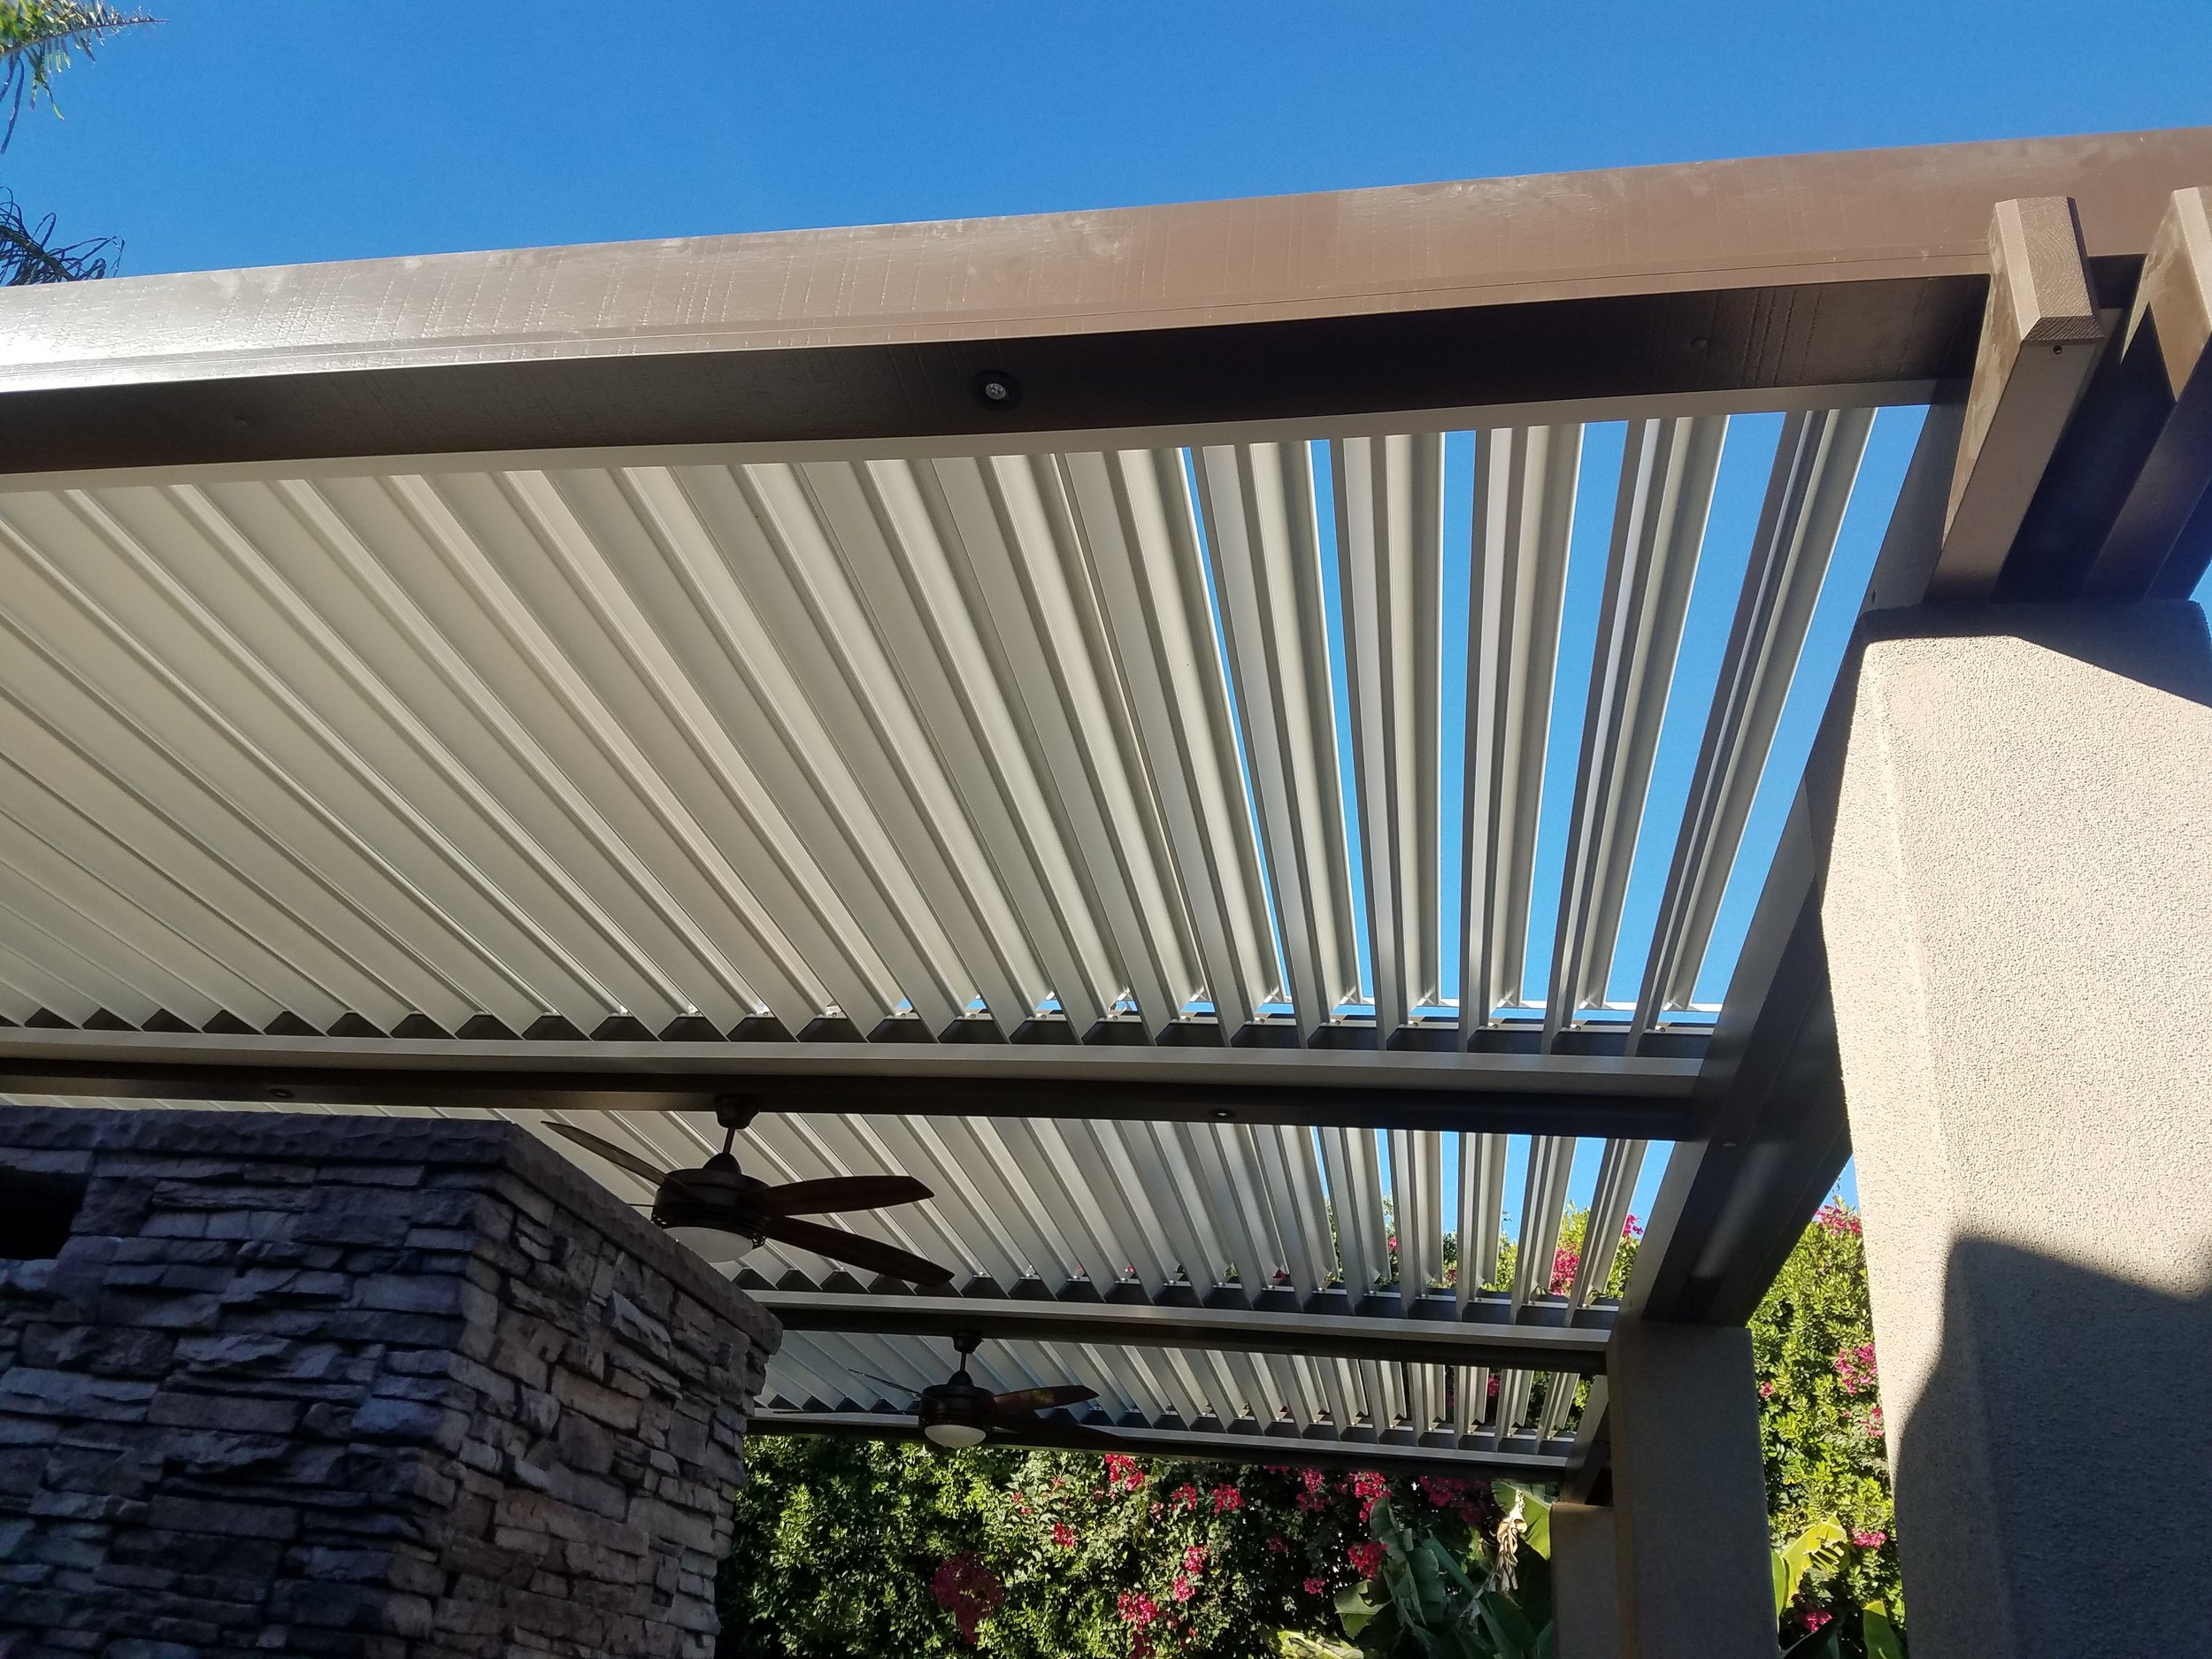 Jurupa Valley Apollo Louvered Roof System